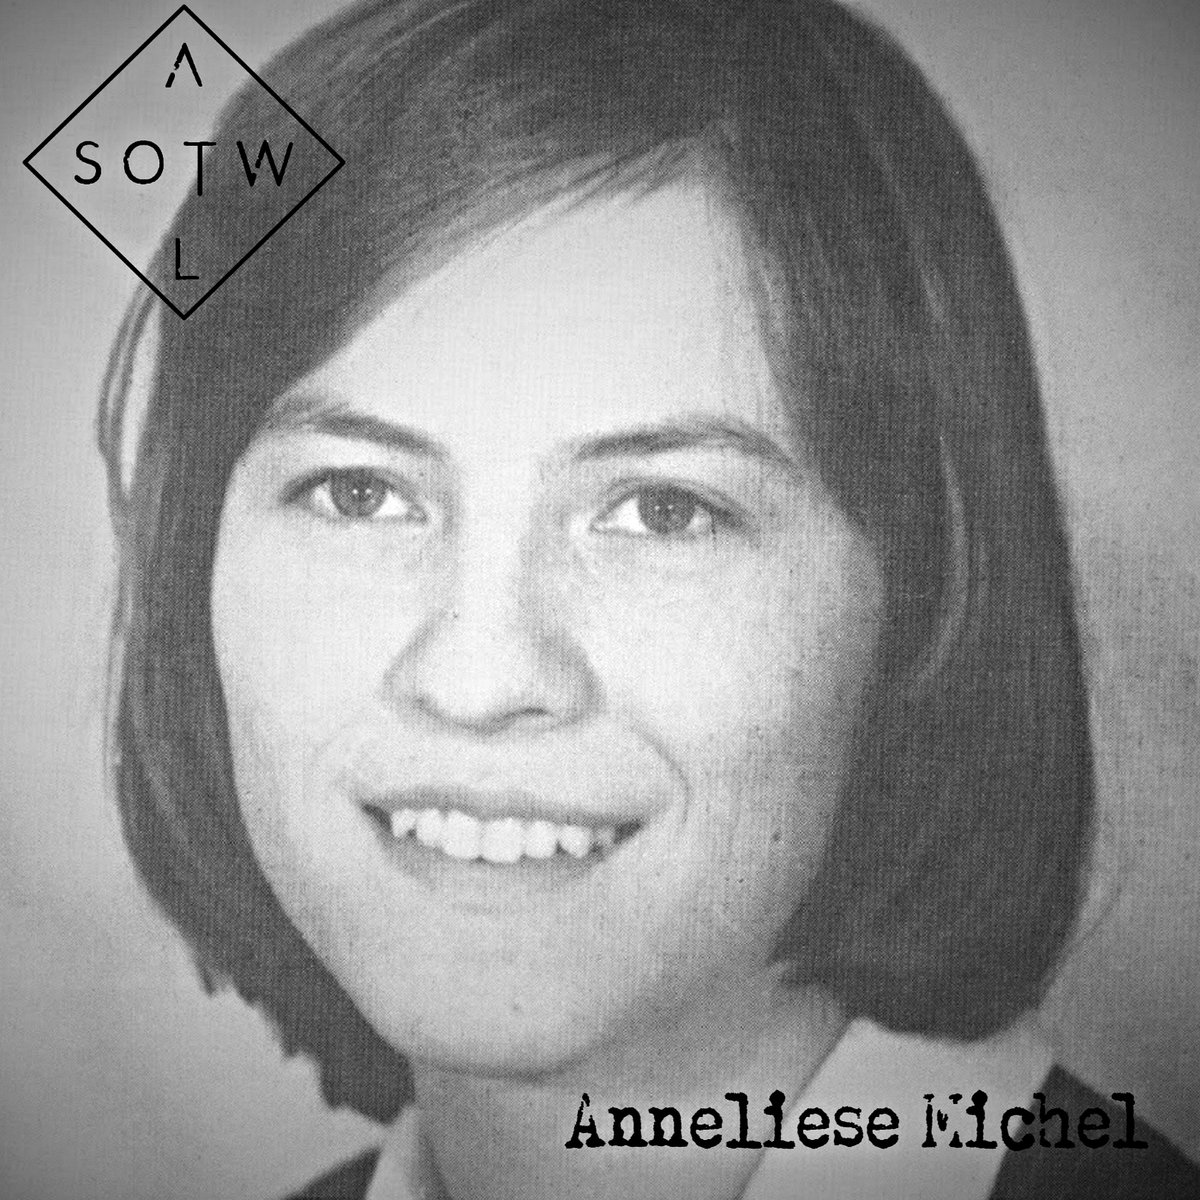 All Signs Of Those Who Left – Anneliese Michel